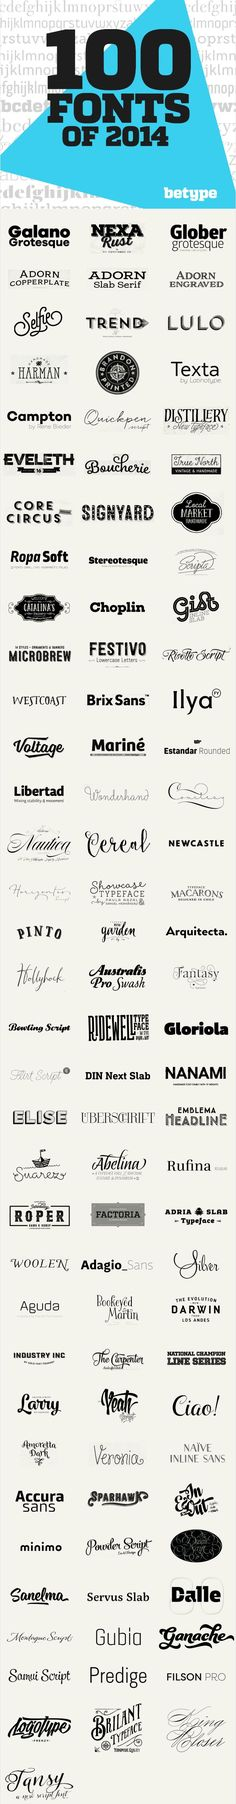 http://betype.co/post/108279450515/100-best-fonts-of-2014-to-close-the-big-feature-i